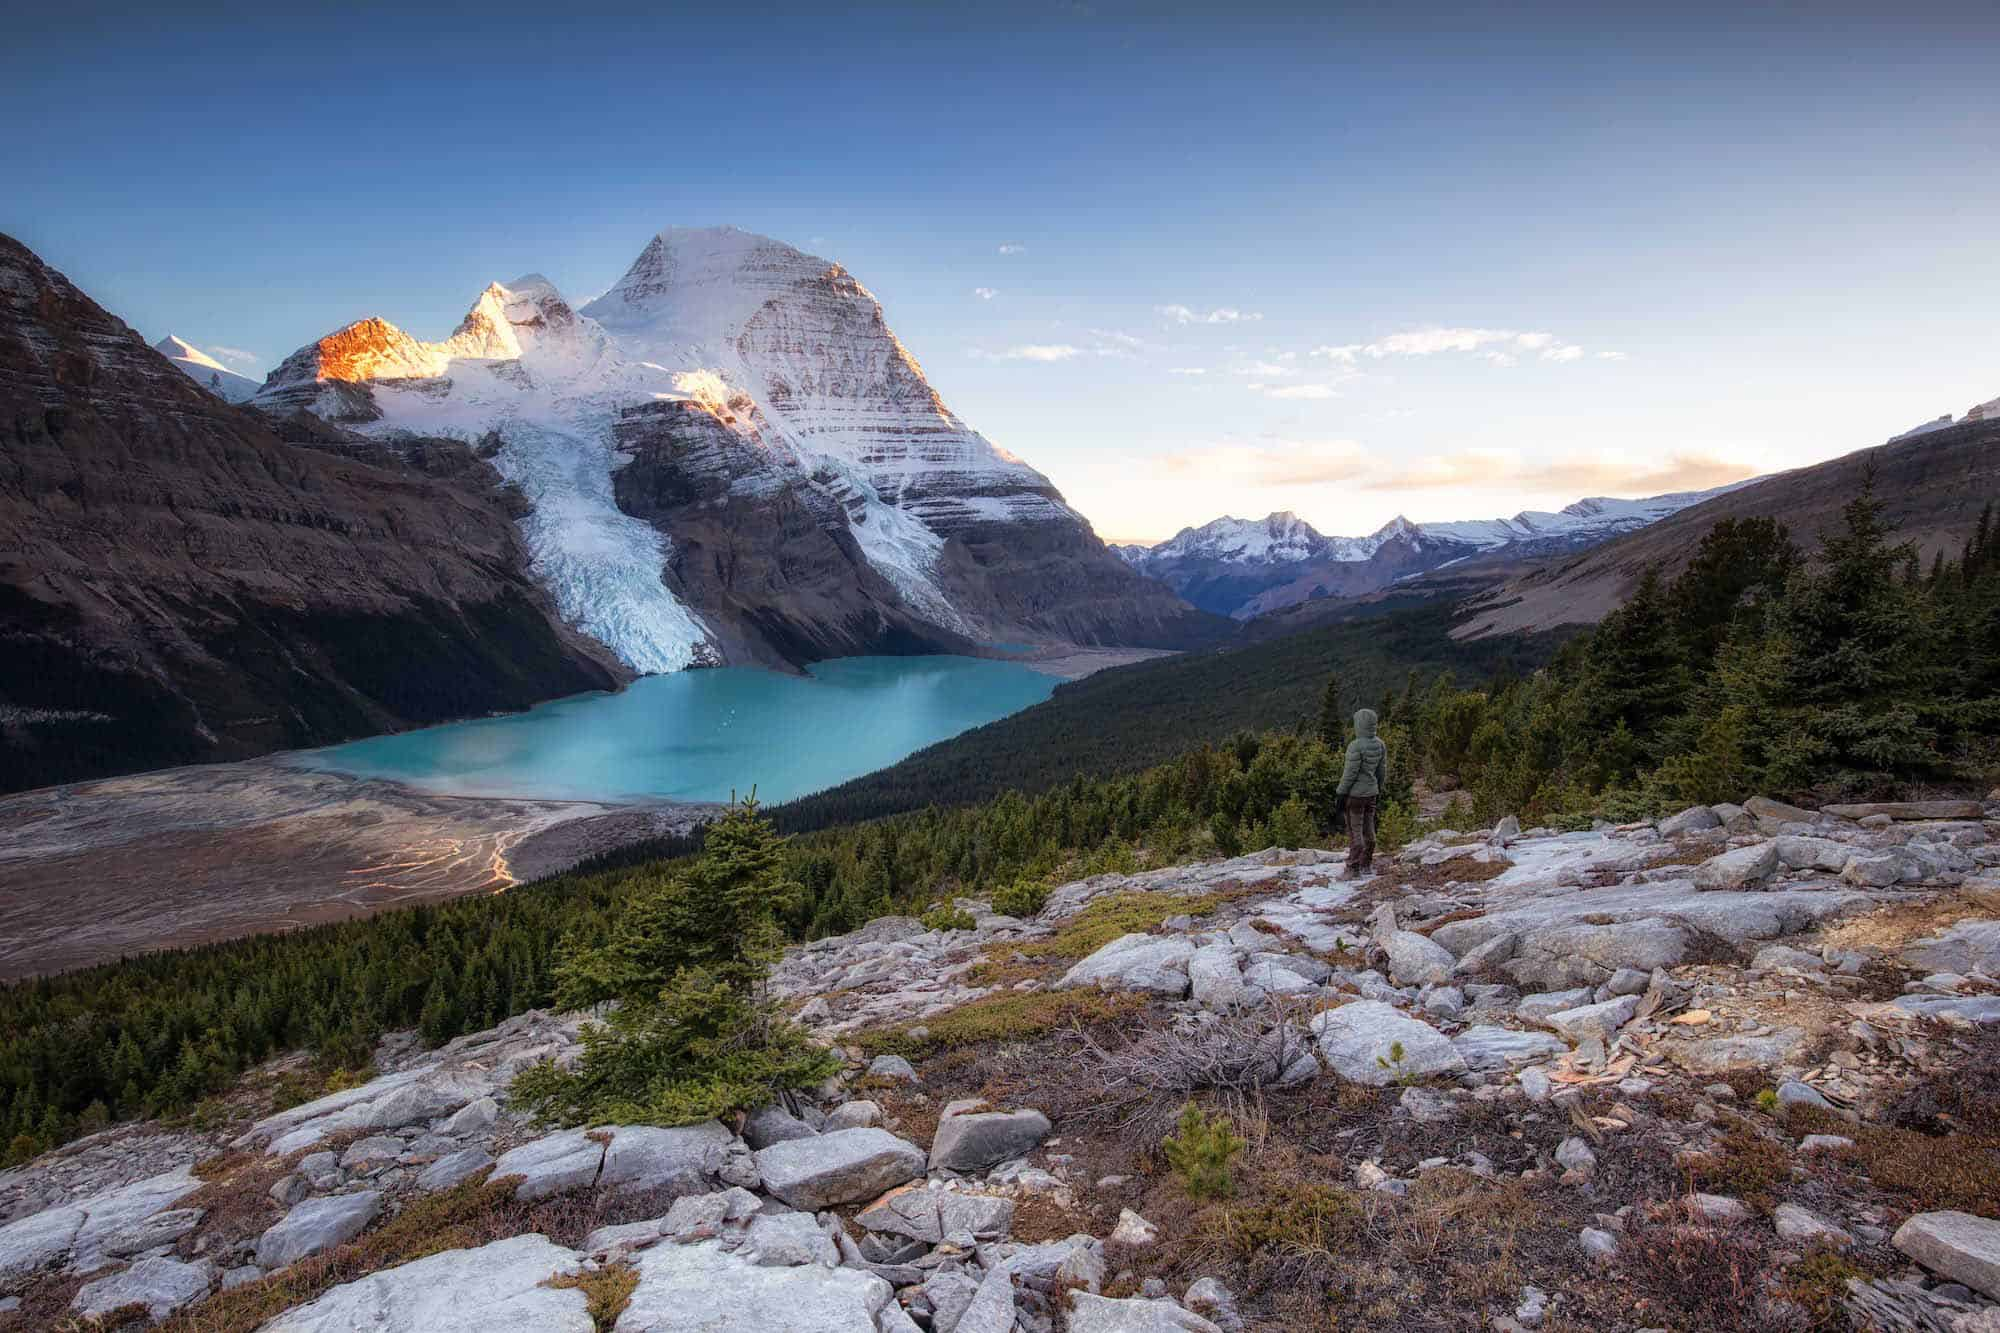 12 hikes in the Canadian Rockies to fuel your wanderlust